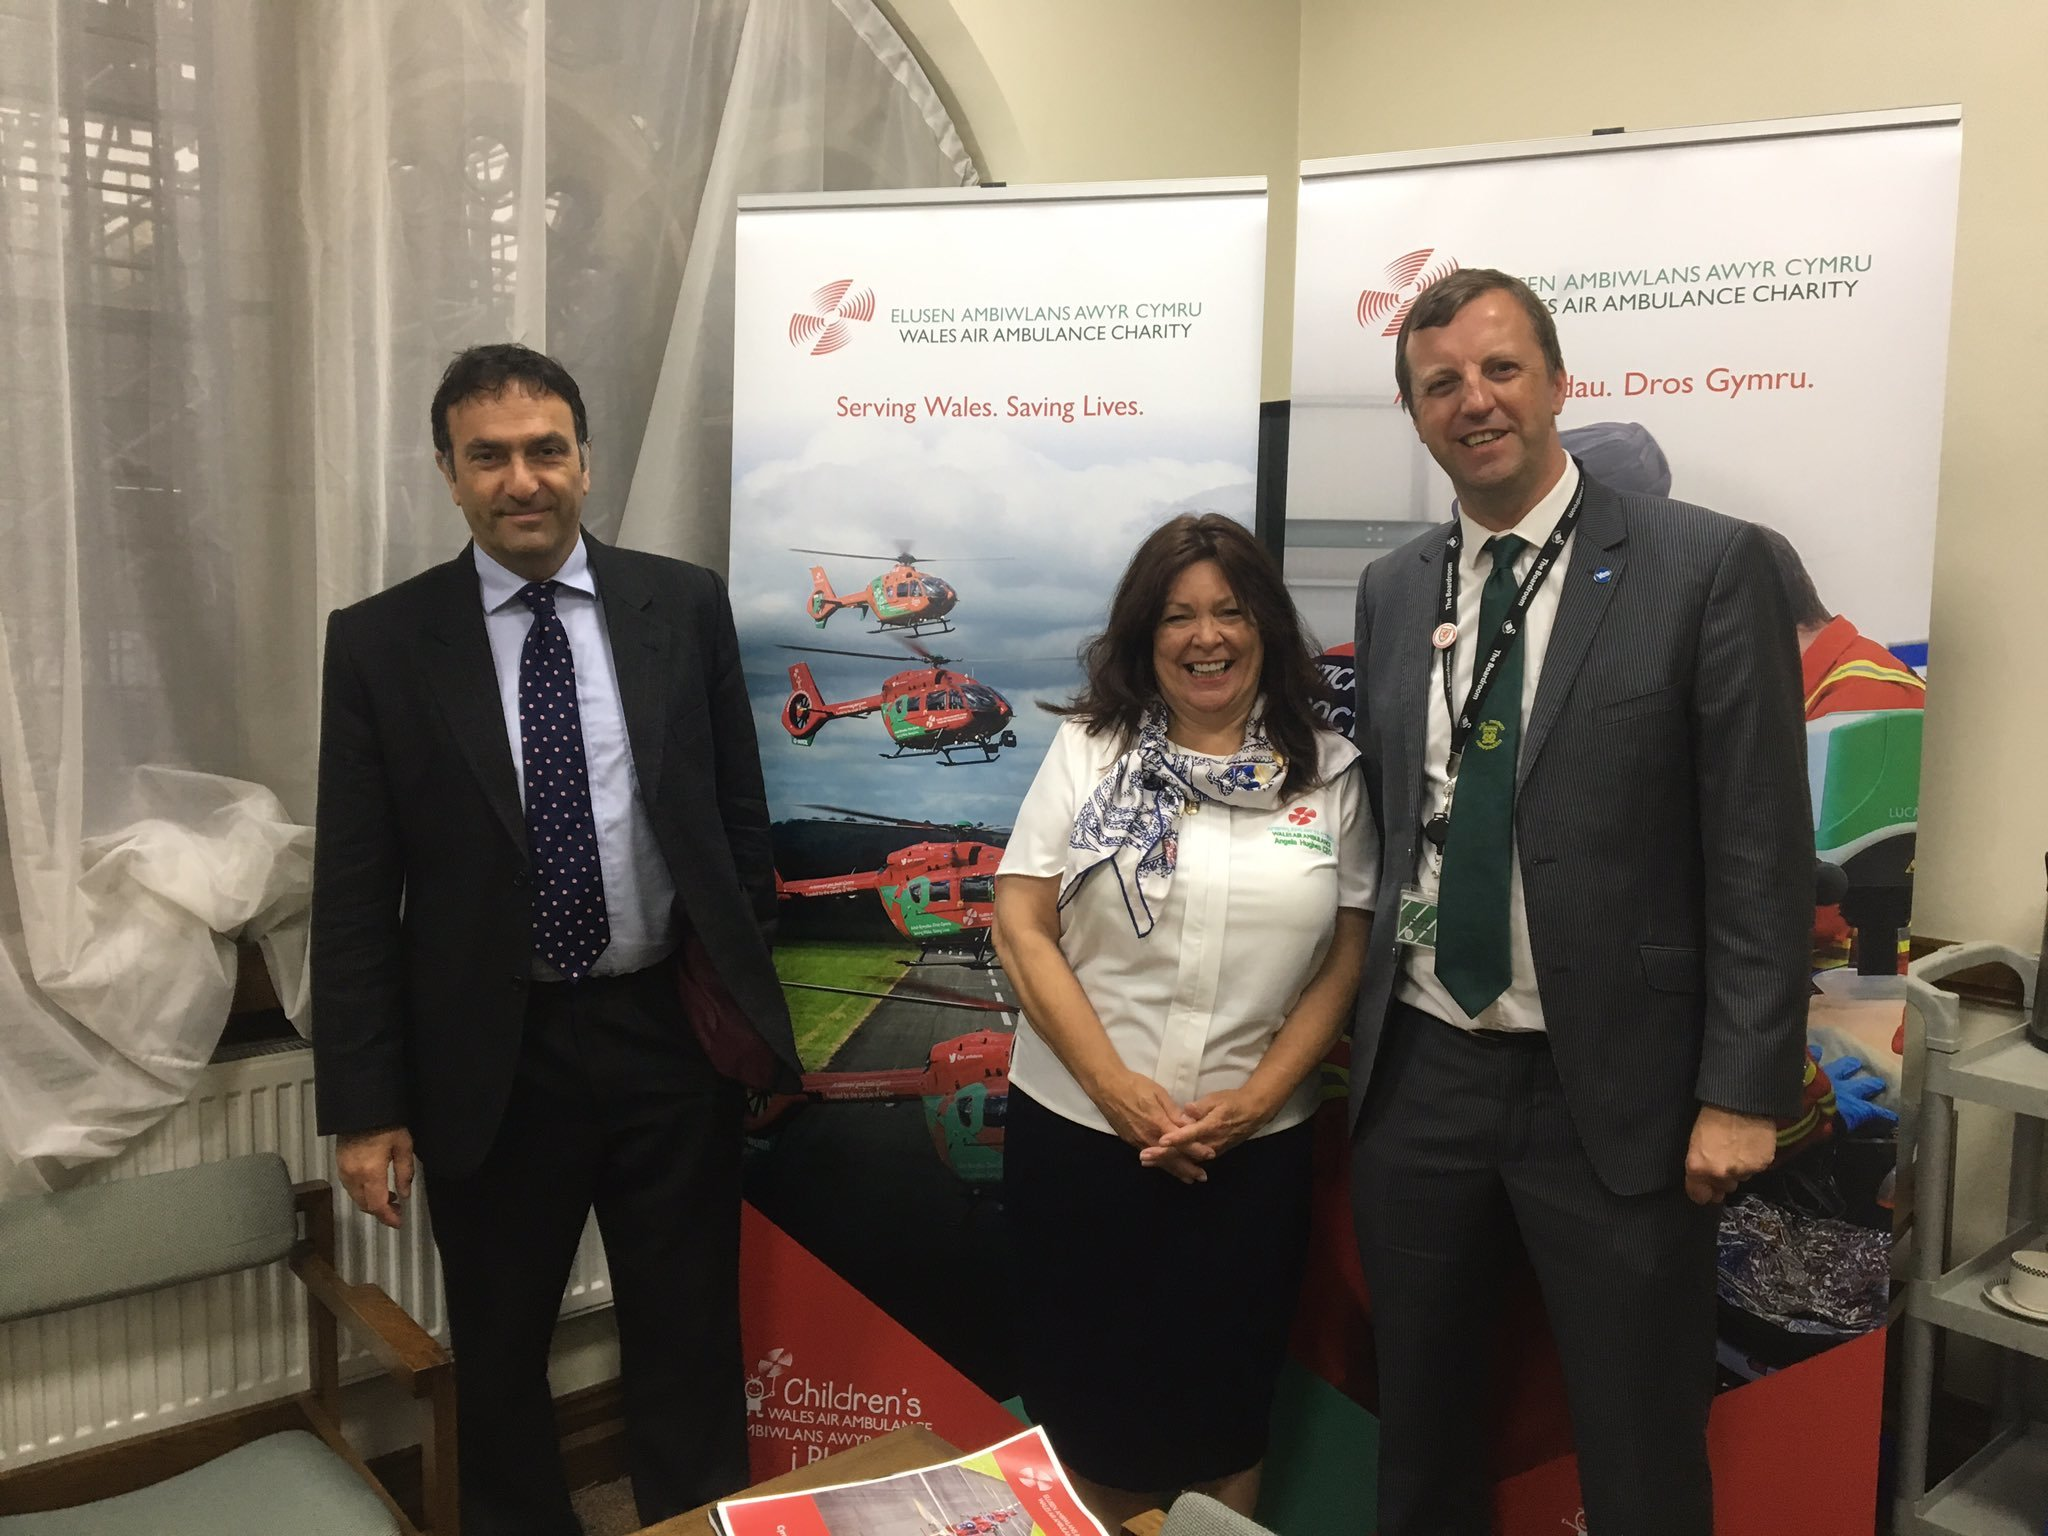 Plaid MP welcomes Wales Air Ambulance to Parliament